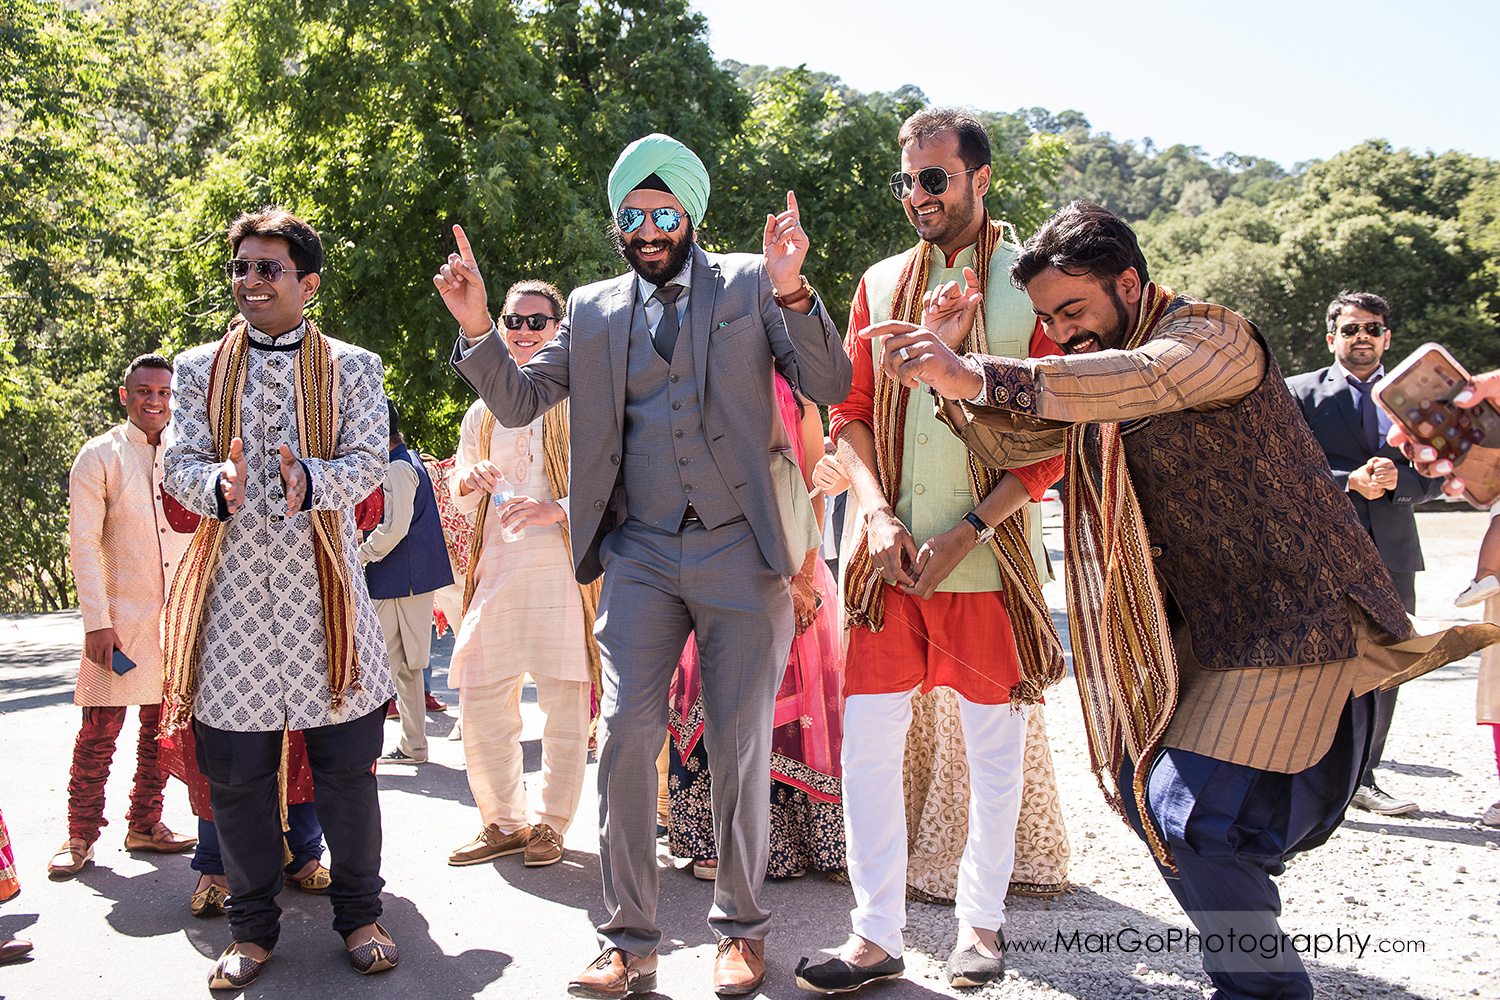 Indian men having fun during Baraat Swagat at Elliston Vineyards in Sunol